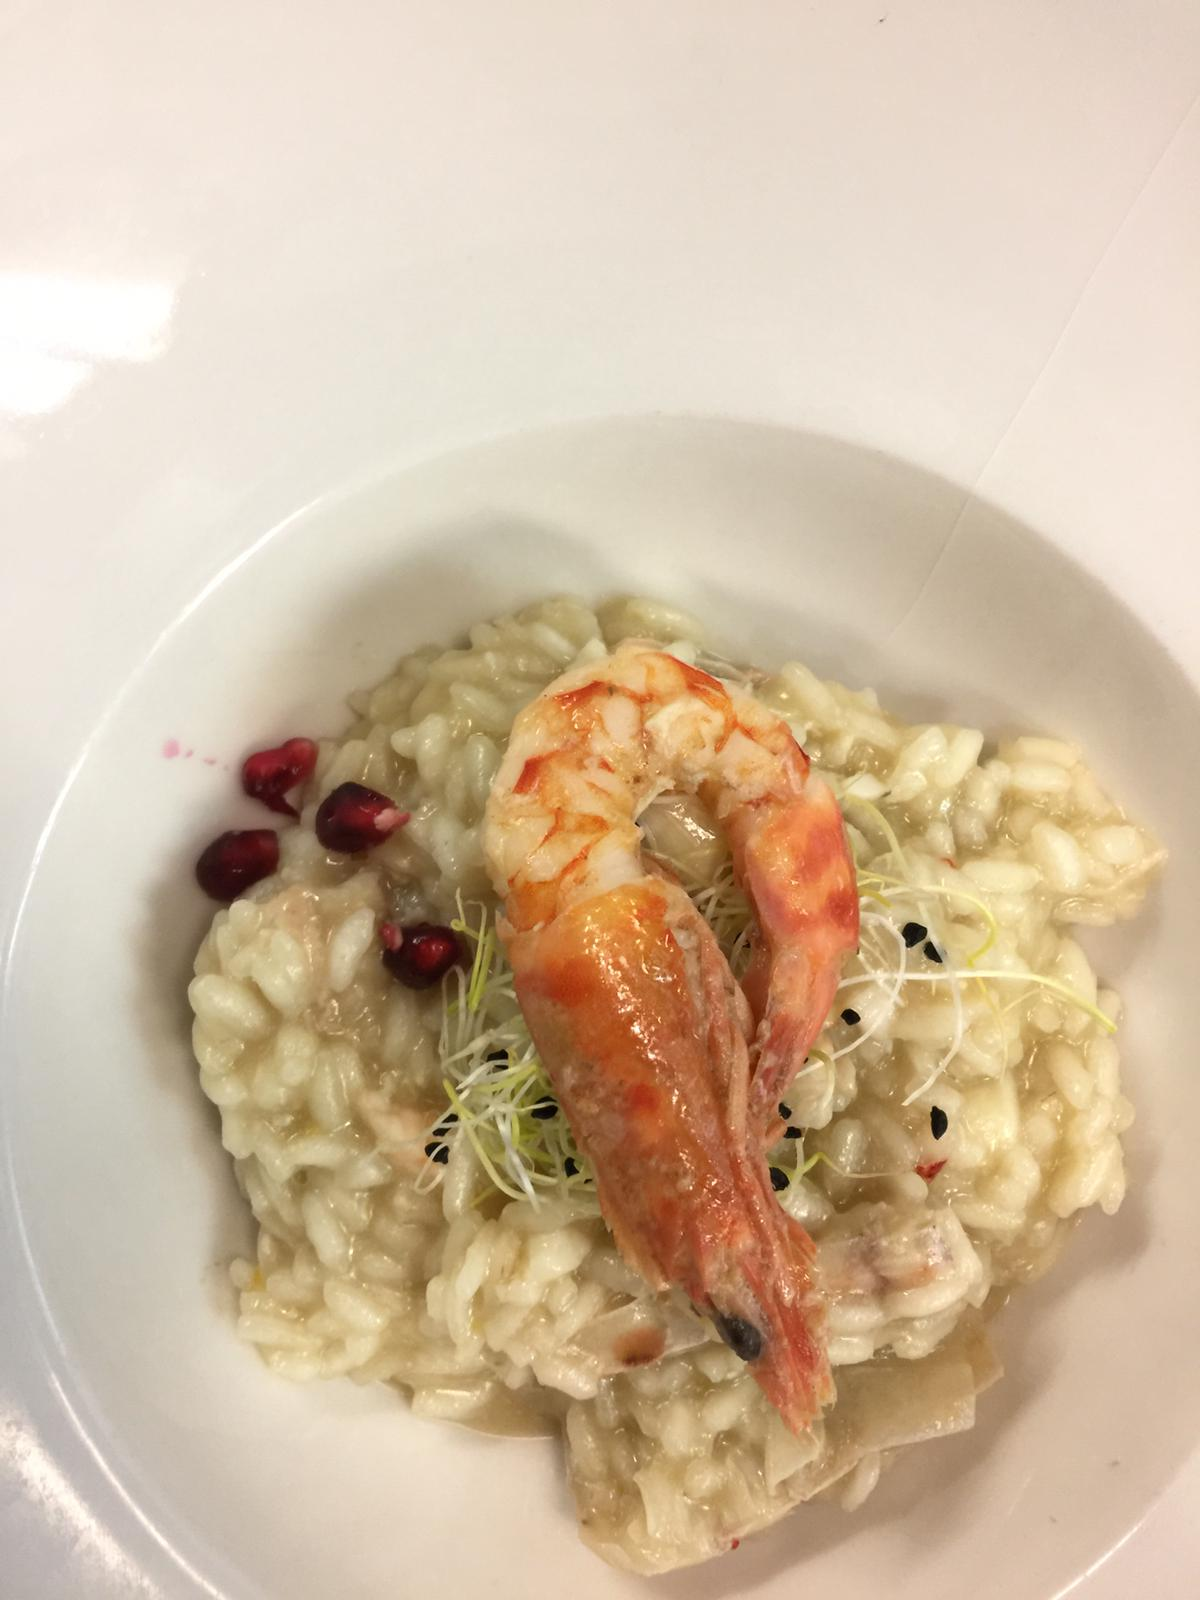 James Bond Damedeo - Risotto crostacei e agrumi